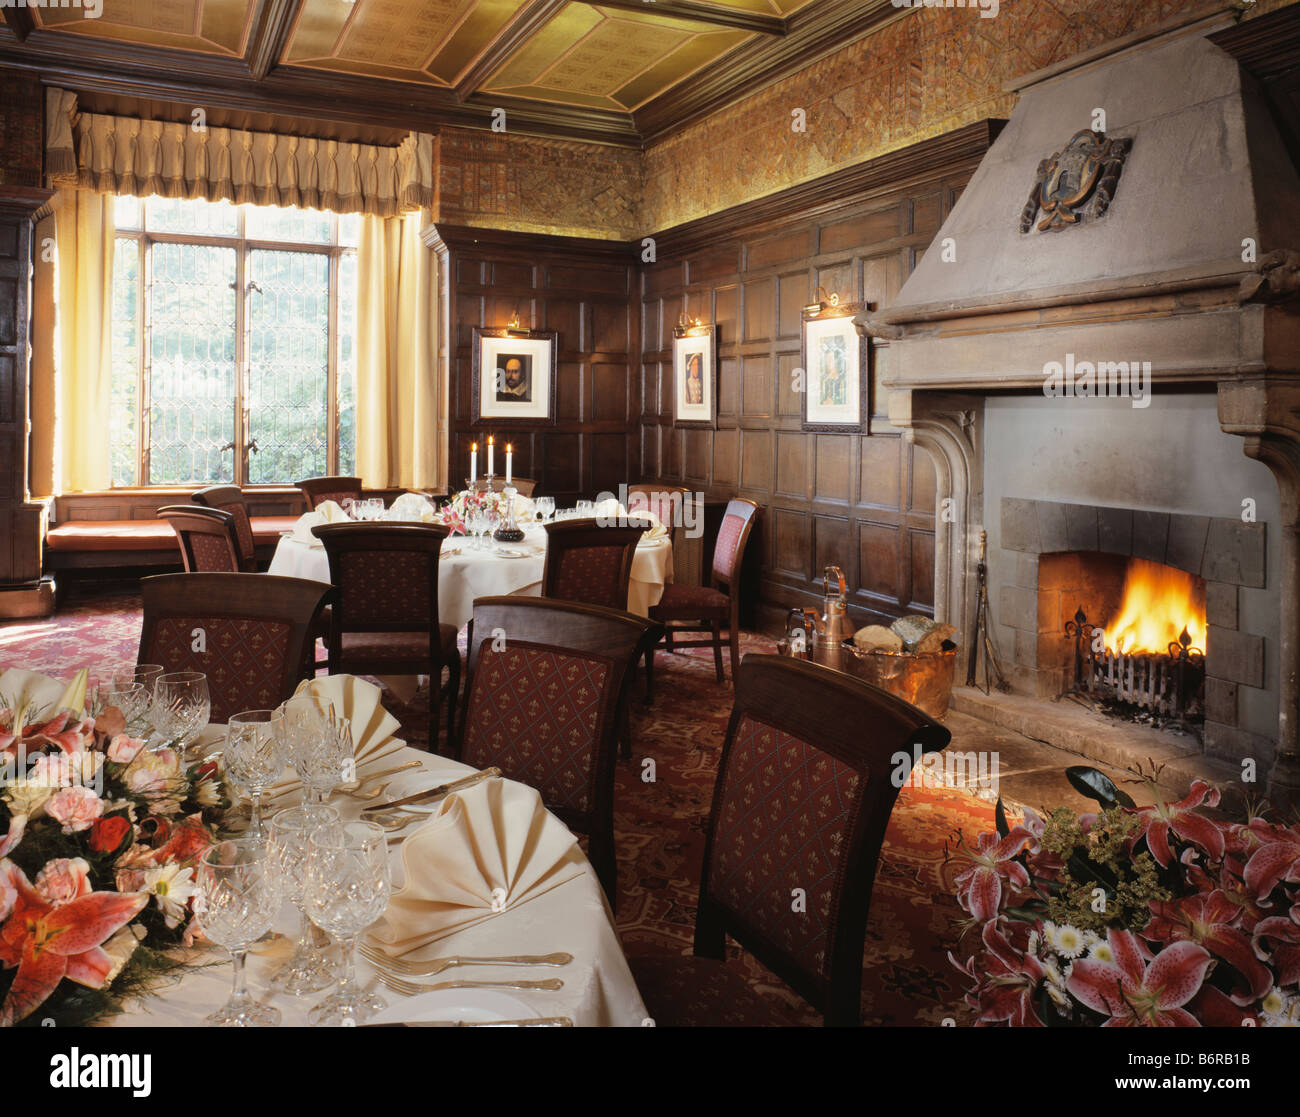 Lighted Fire In Large Fireplace In Paneled Country Hotel Dining Room Stock Photo Royalty Free